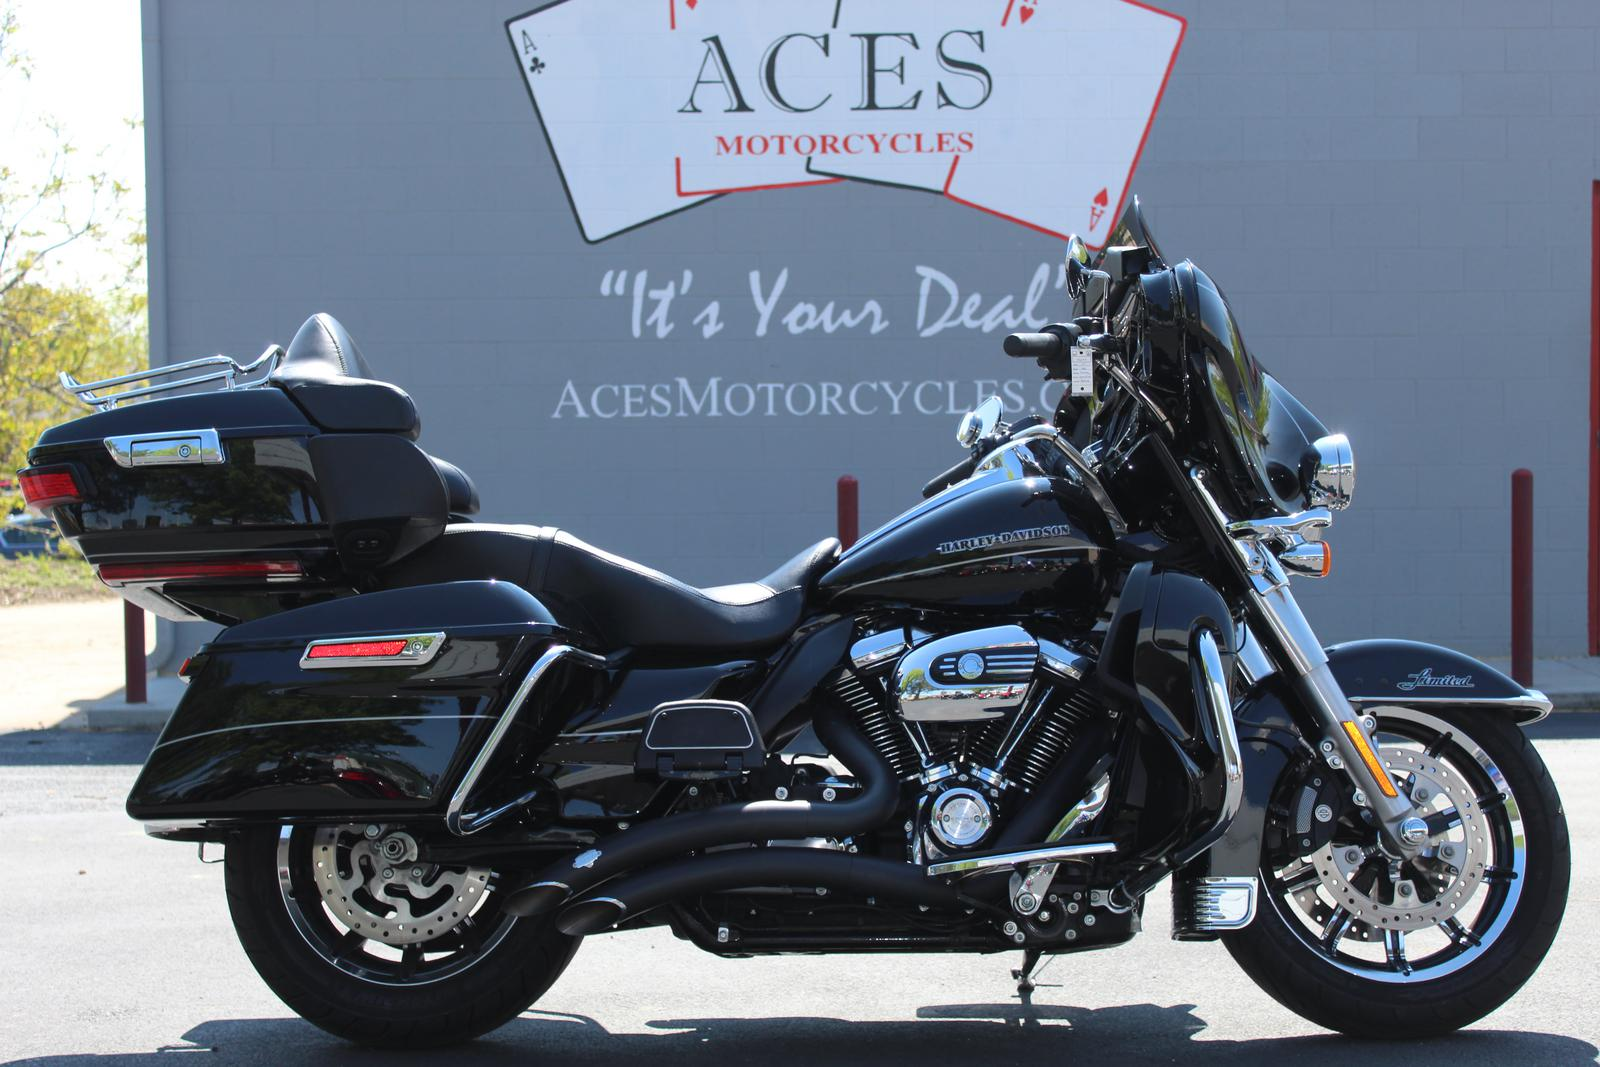 2008 and 2017 Cruiser/V-Twin from Harley-Davidson® ACES